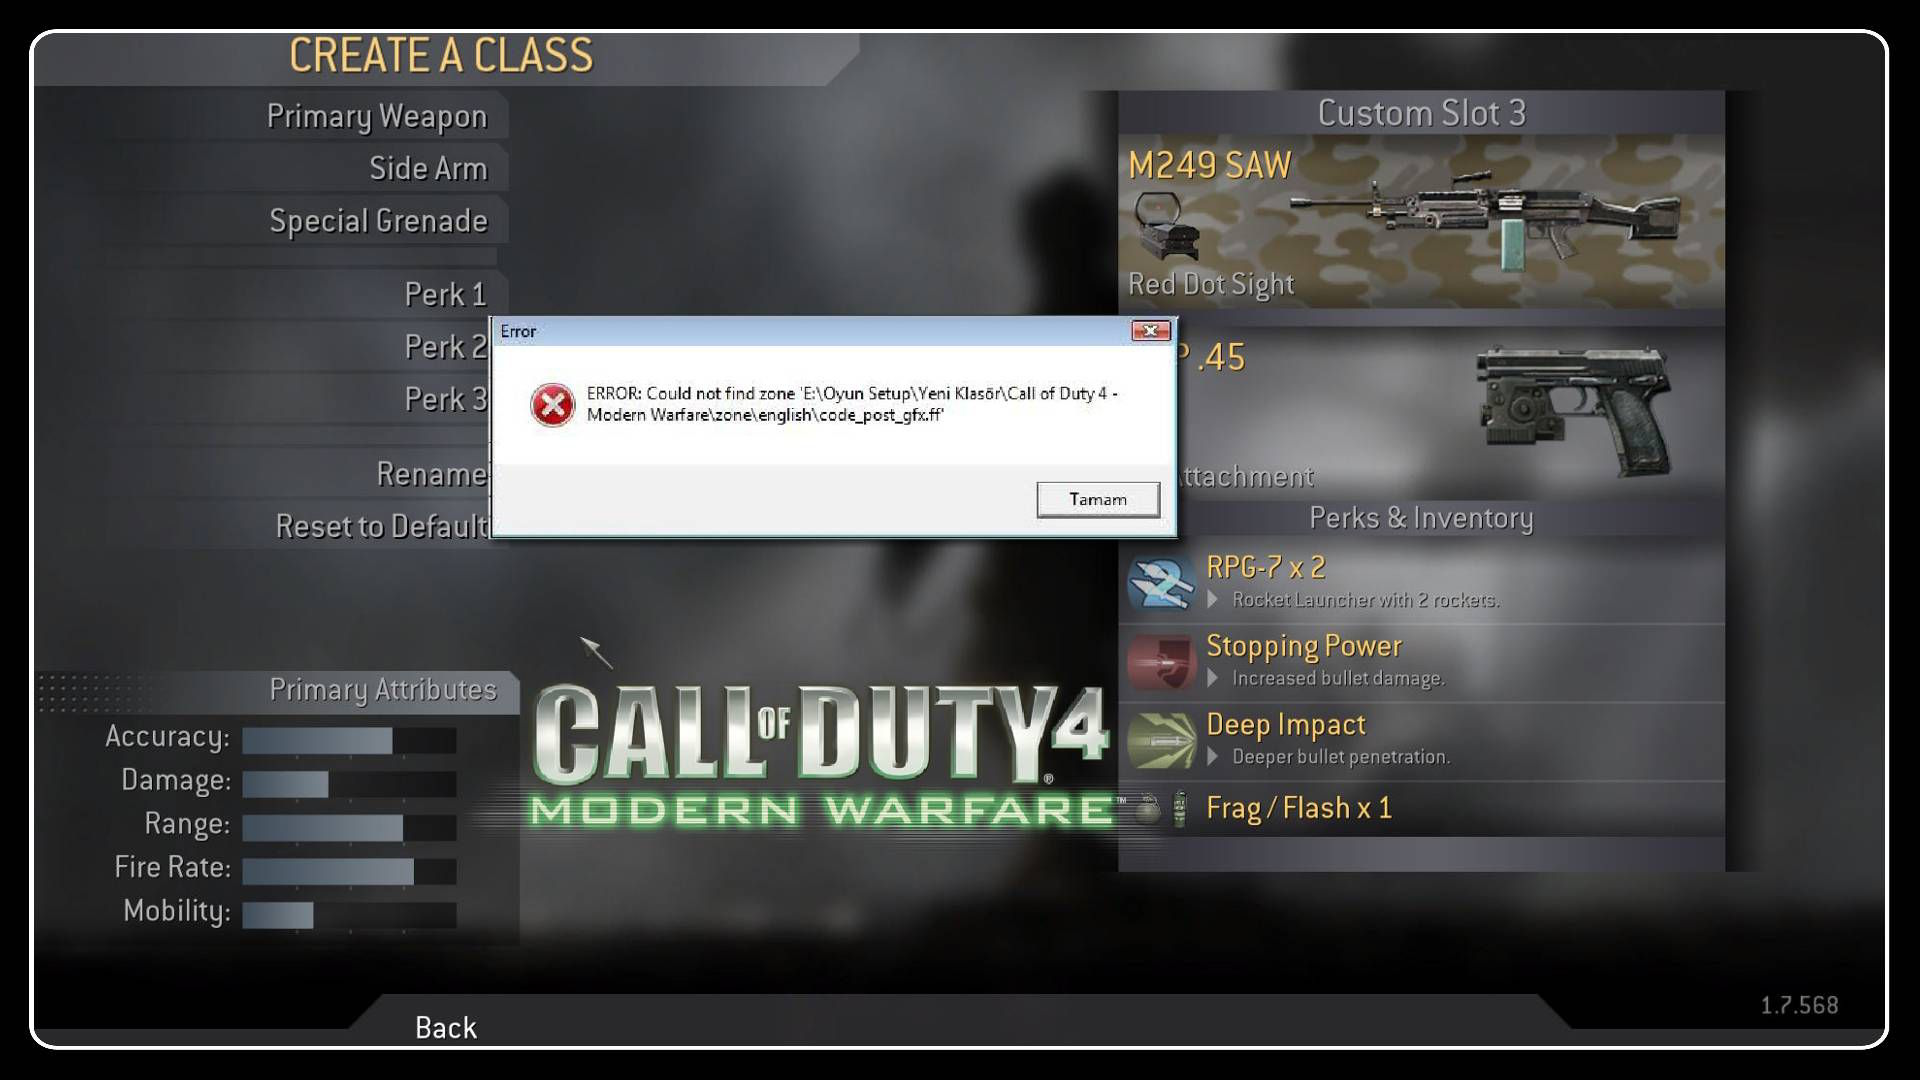 Call of Duty 4 code_post_gfx.ff ve code_post_gfx_mp.ff Hataları